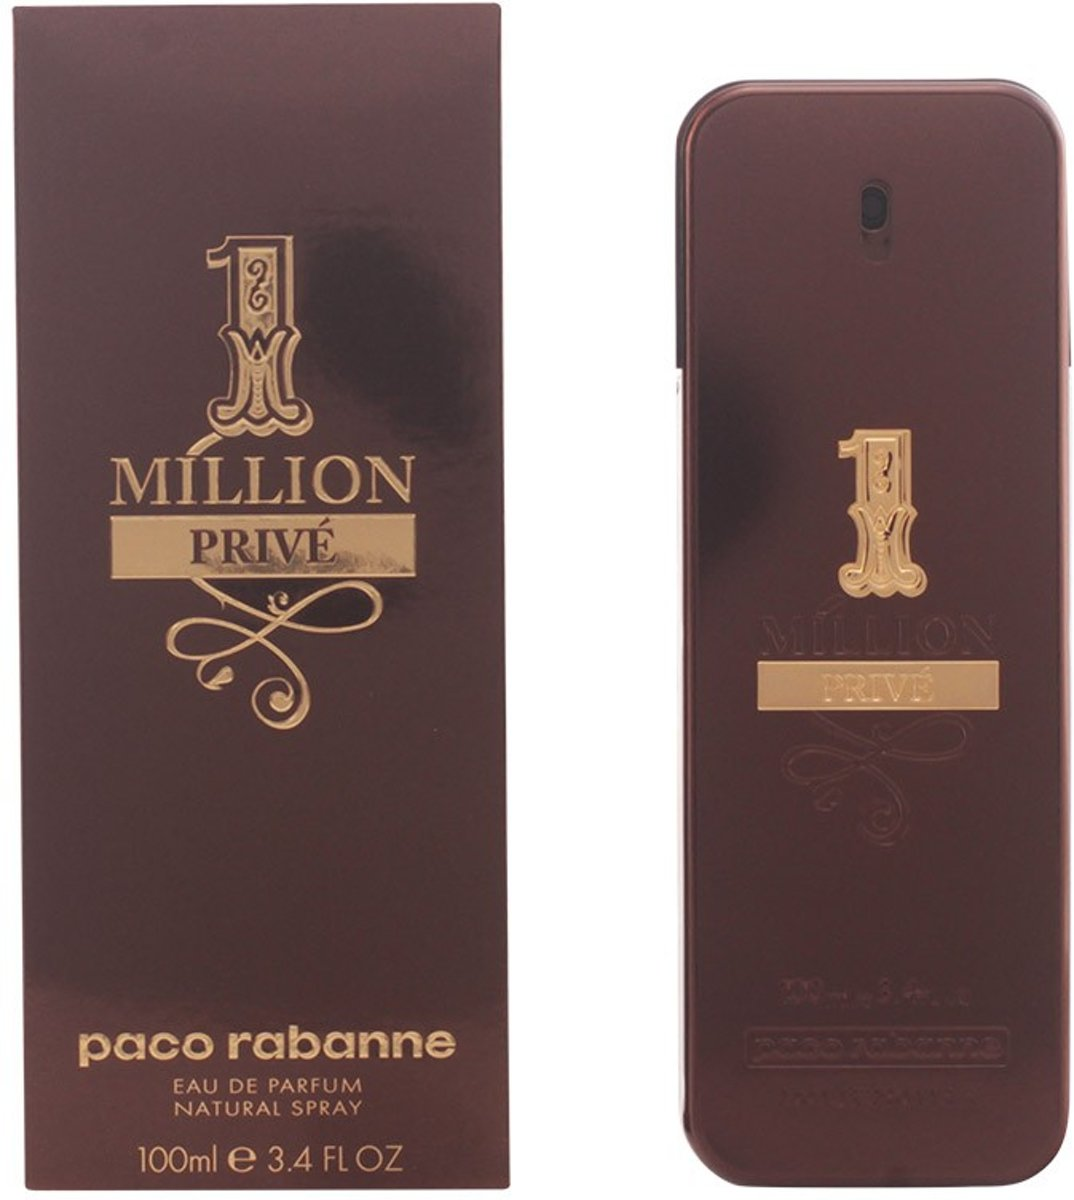 MULTI BUNDEL 2 stuks 1 MILLION PRIVÉ Eau de Perfume Spray 100 ml